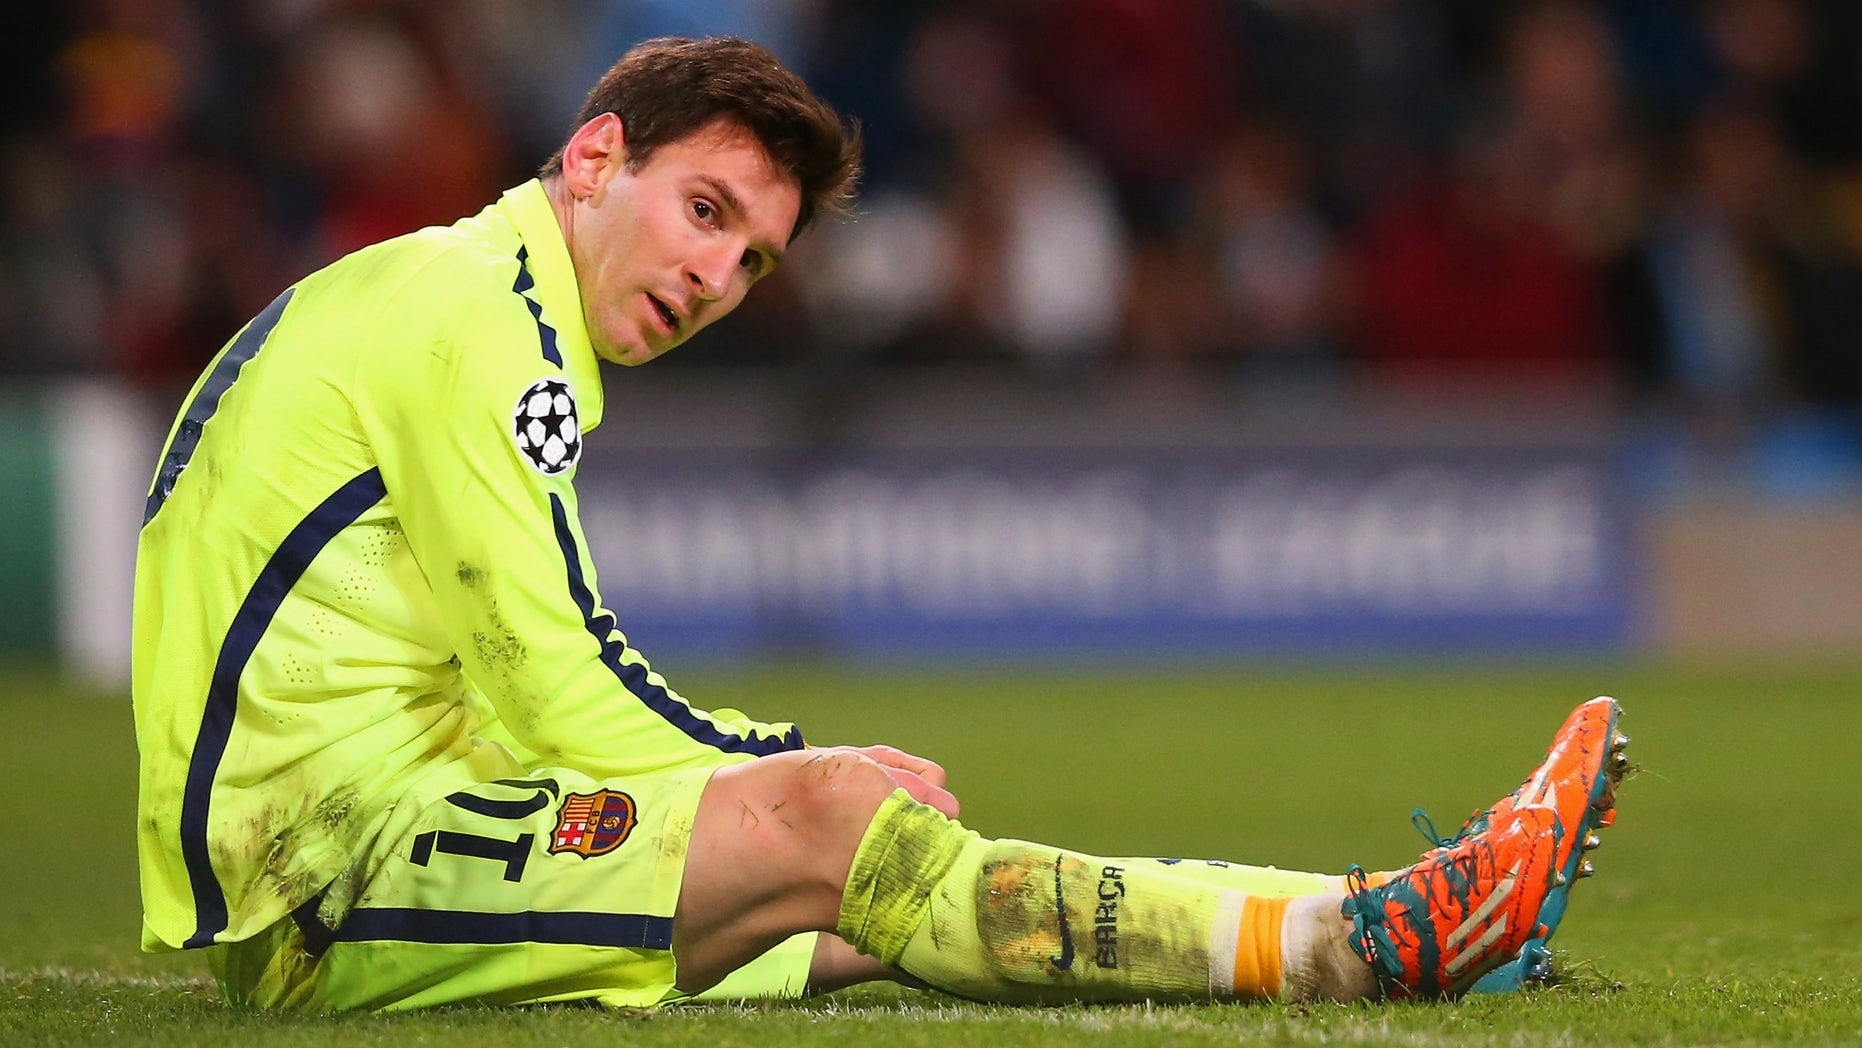 MANCHESTER, ENGLAND - FEBRUARY 24:  Lionel Messi of Barcelona lies on the pitch after his penalty iwas saved by Joe Hart of Manchester City during the UEFA Champions League Round of 16 match between Manchester City and Barcelona at Etihad Stadium on February 24, 2015 in Manchester, United Kingdom.  (Photo by Alex Livesey/Getty Images)